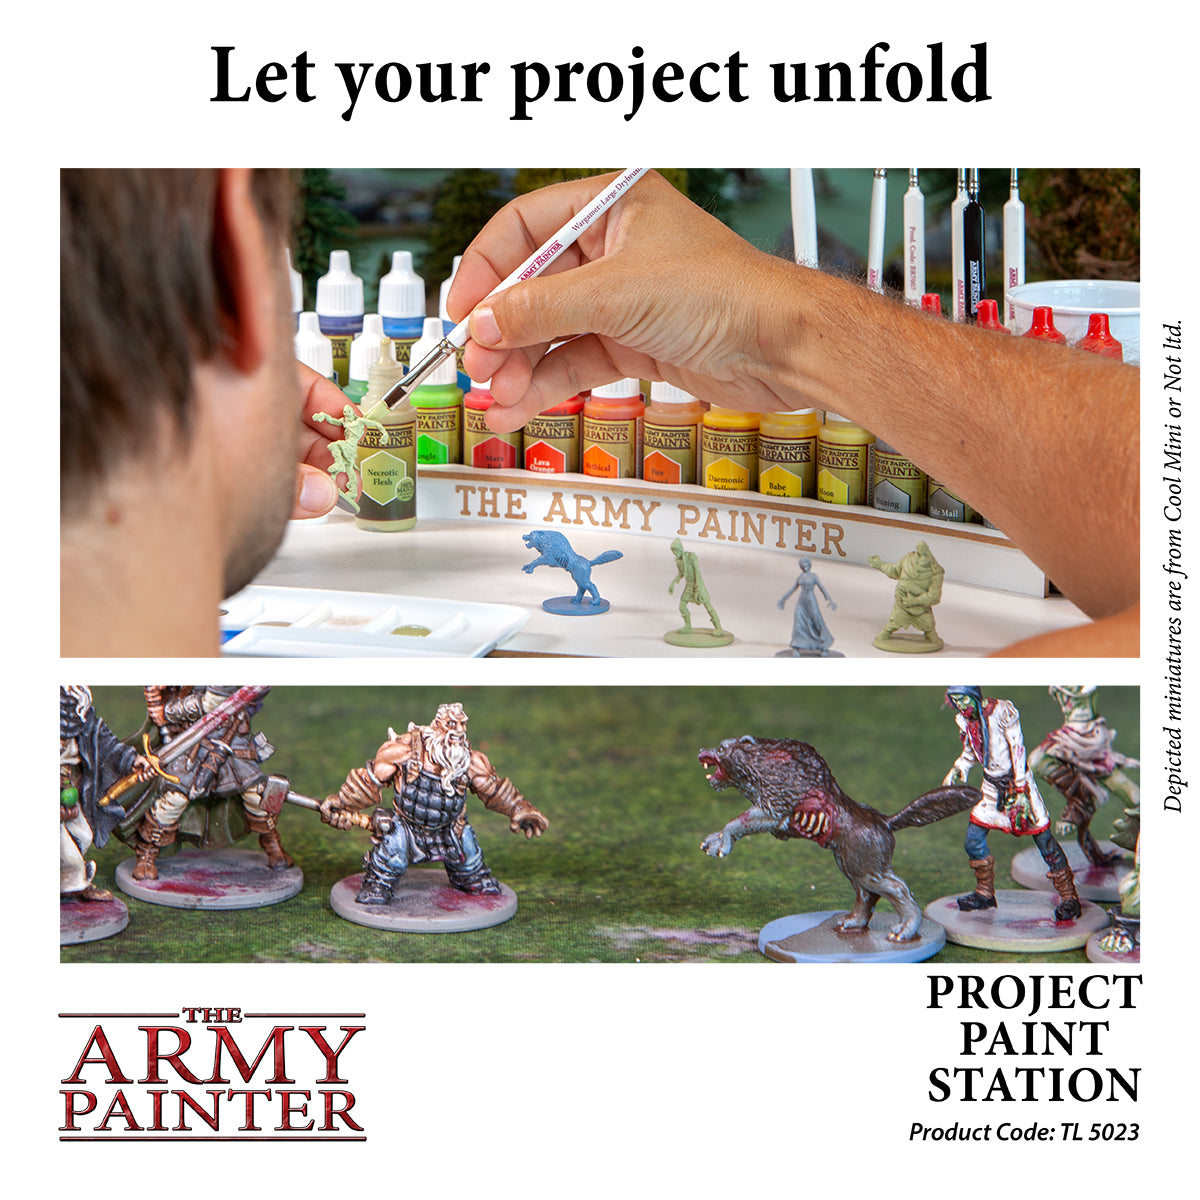 Project Paint Station | Davis Cards & Games